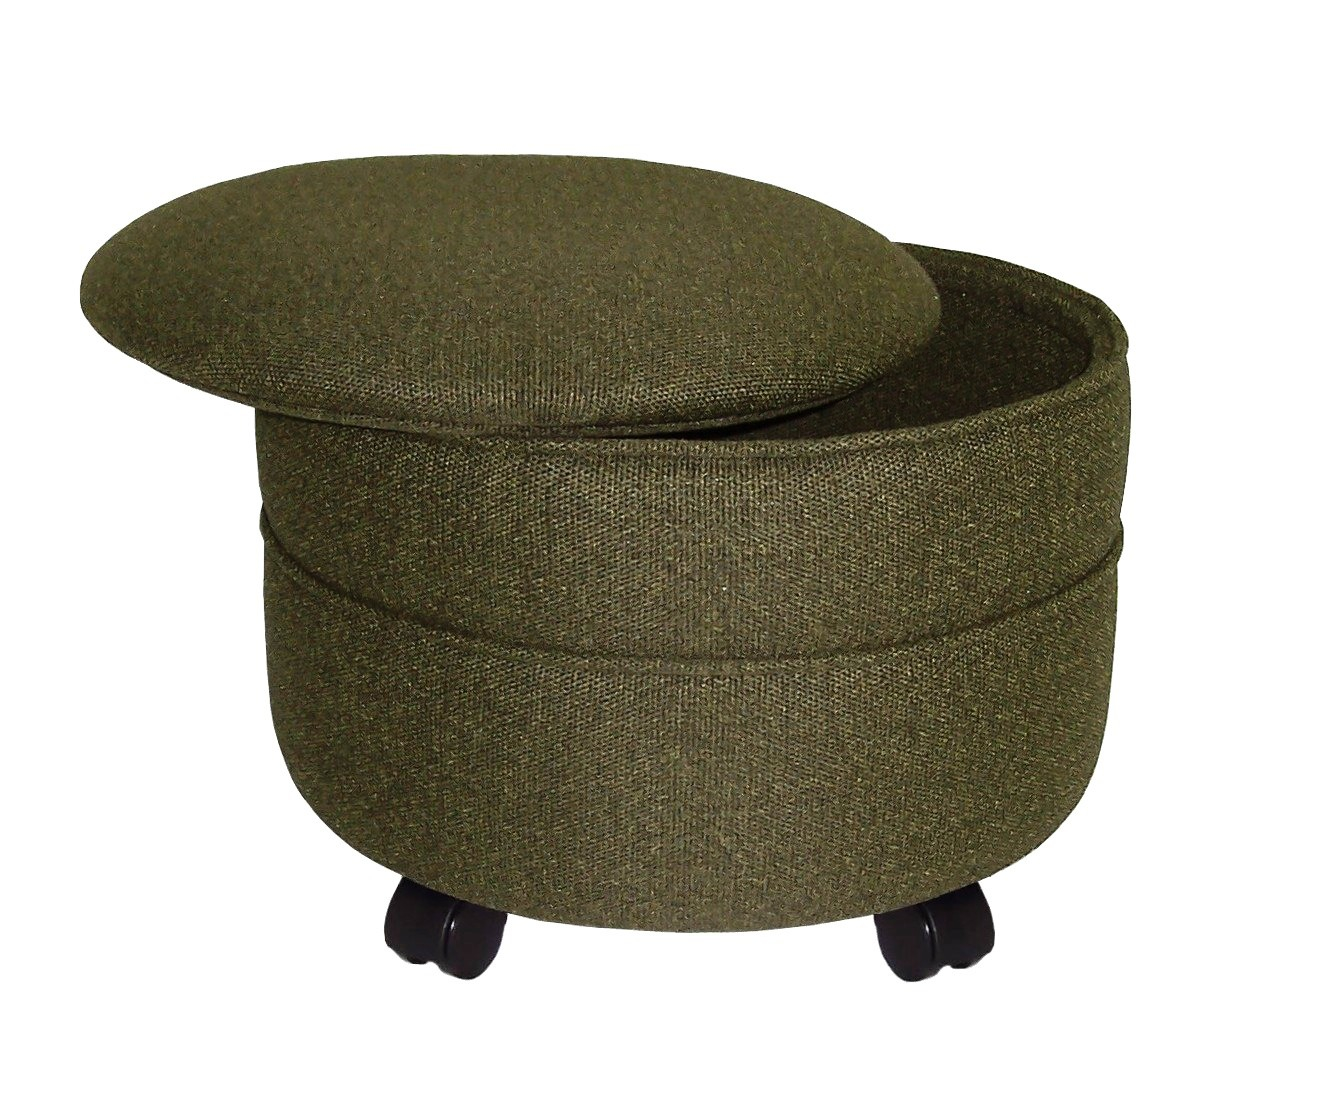 Furniture amazing round storage ottoman for home furniture ideas Round ottoman coffee table with storage